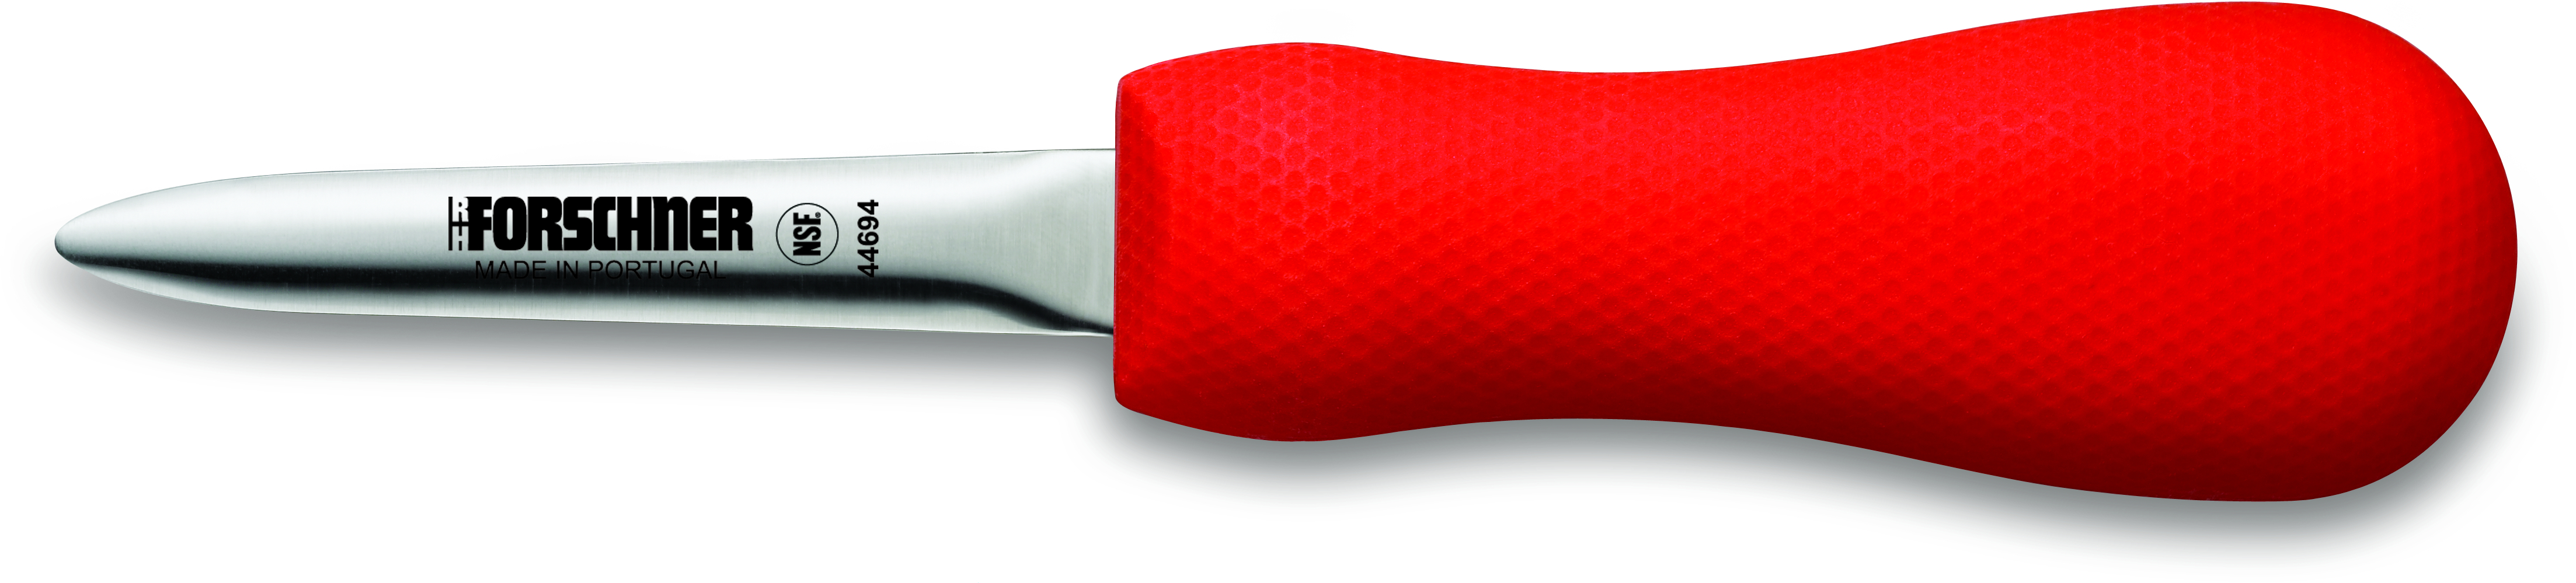 Victorinox Forschner Narrow Boston Style High Carbon Steel Oyster Knife with Red Supergrip Handle, 3 Inch